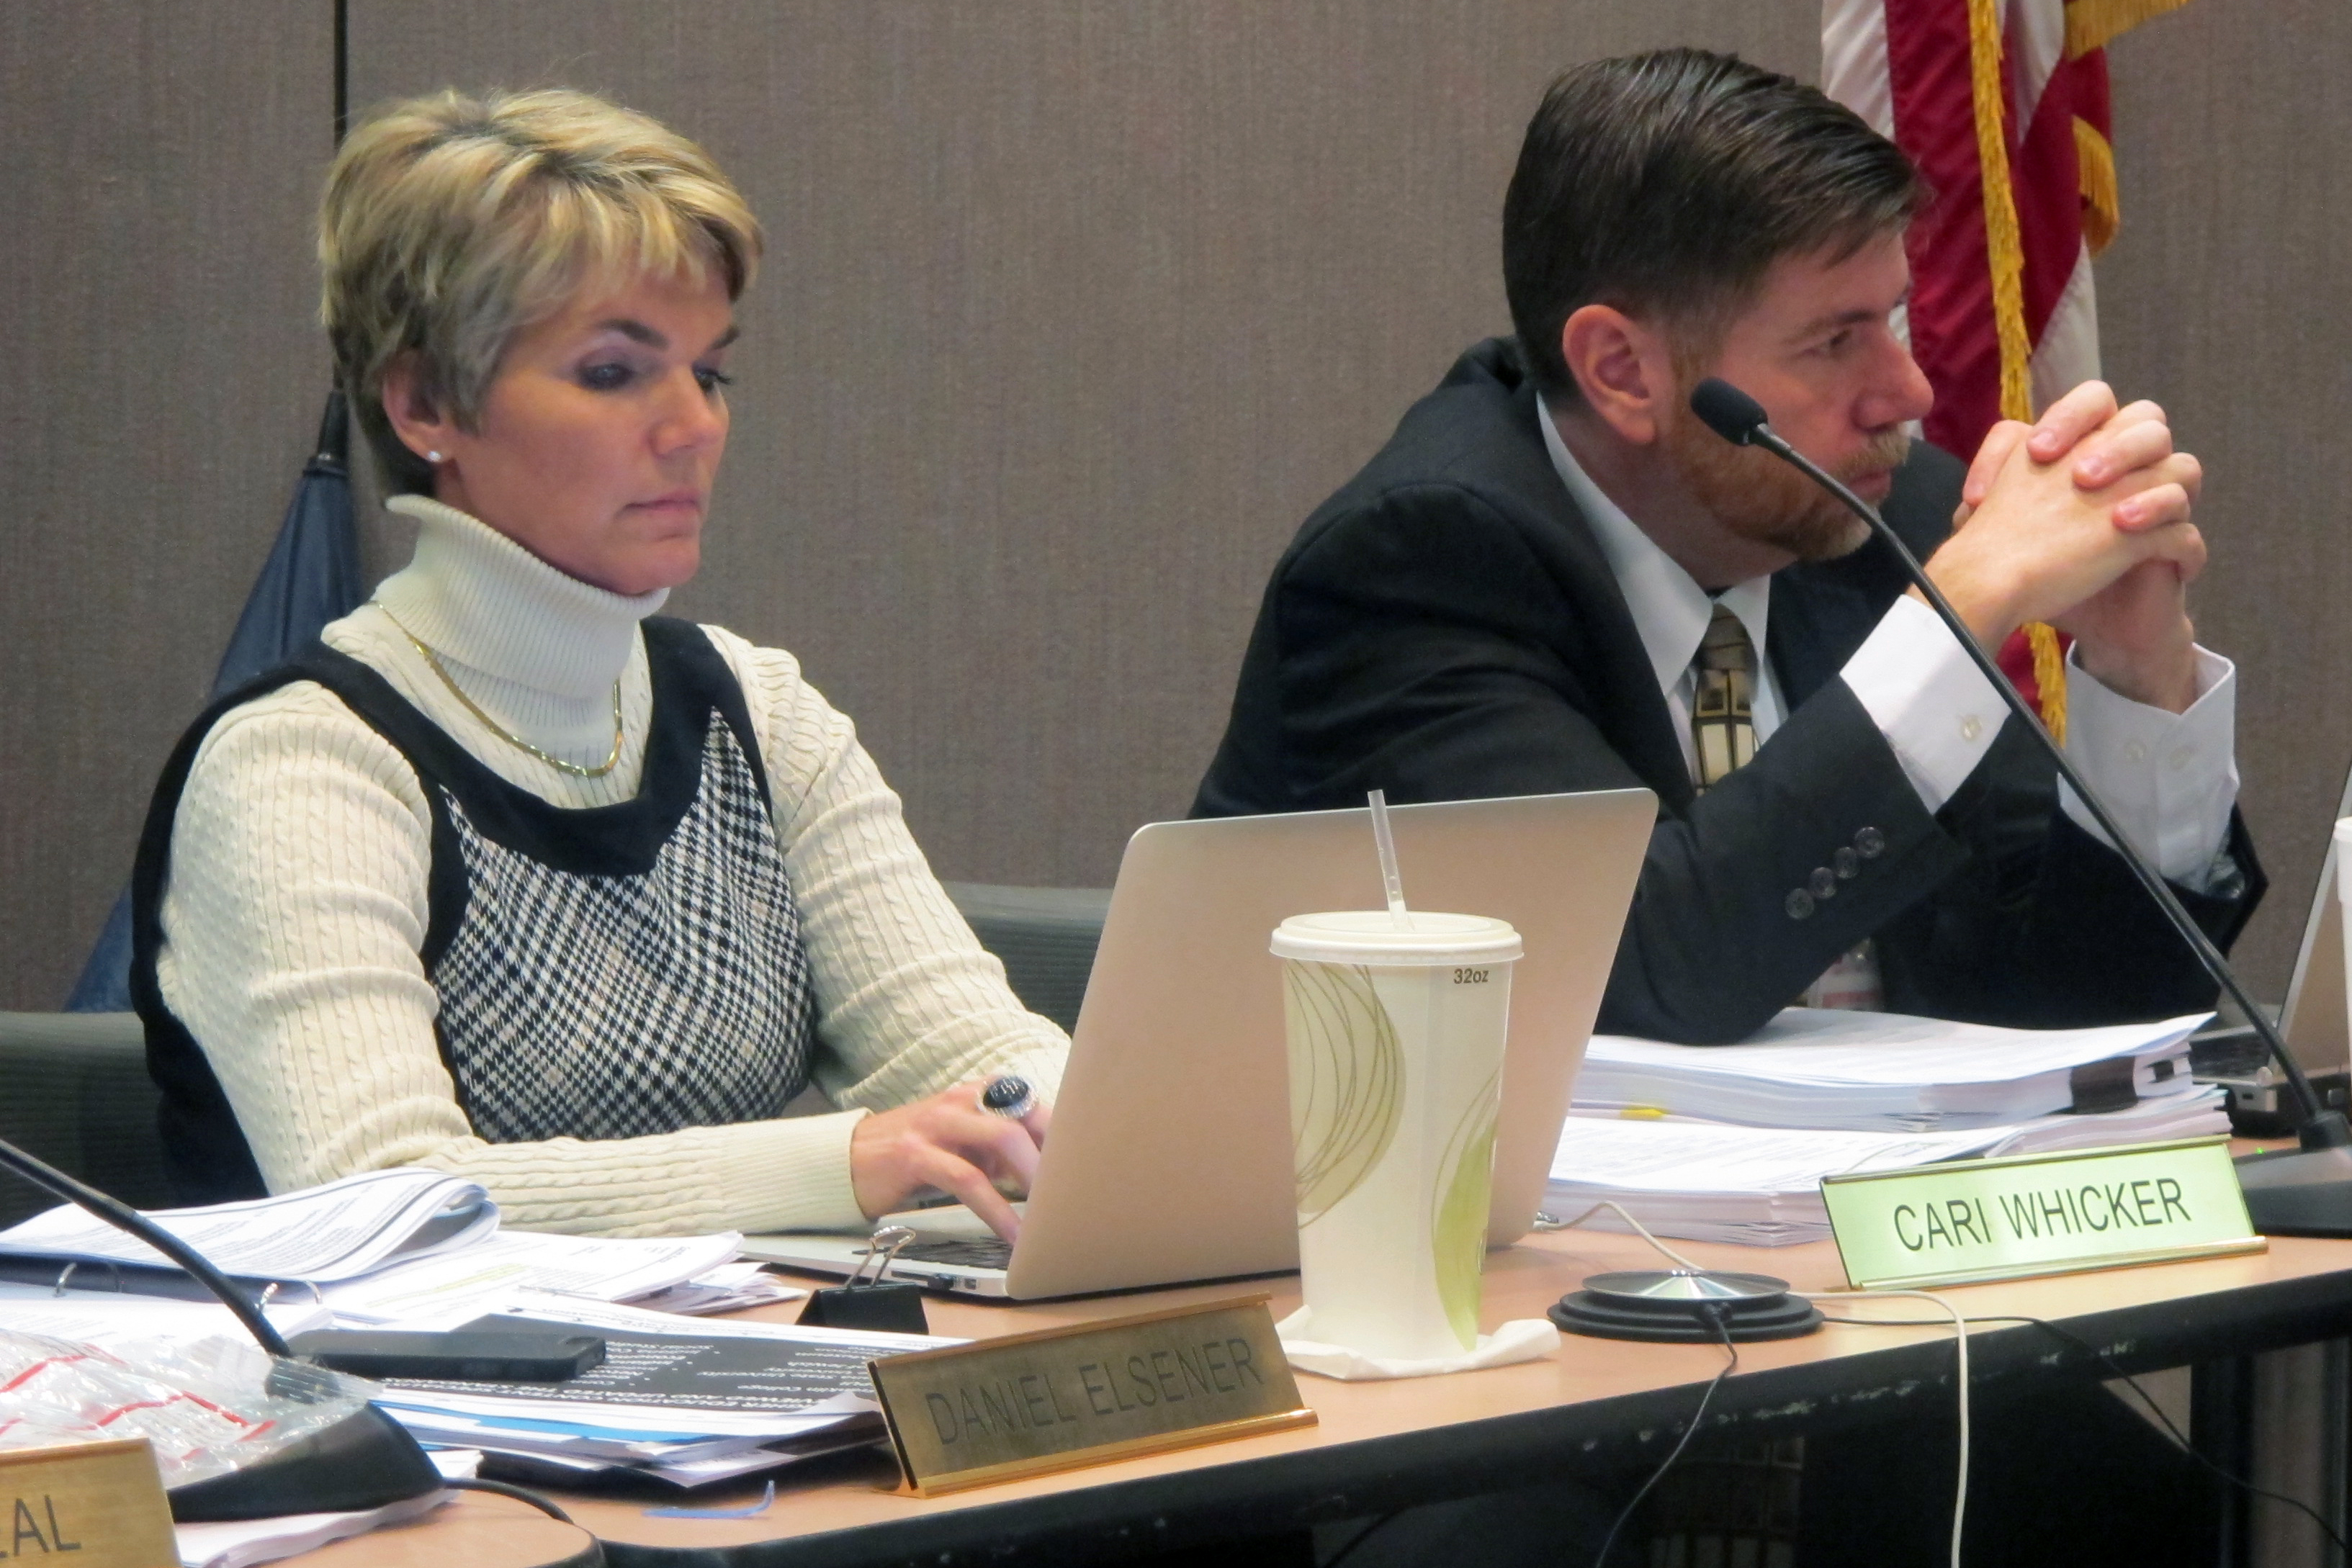 State Board members Cari Whicker, left, and Brad Oliver listen during a presentation on new social studies standards.